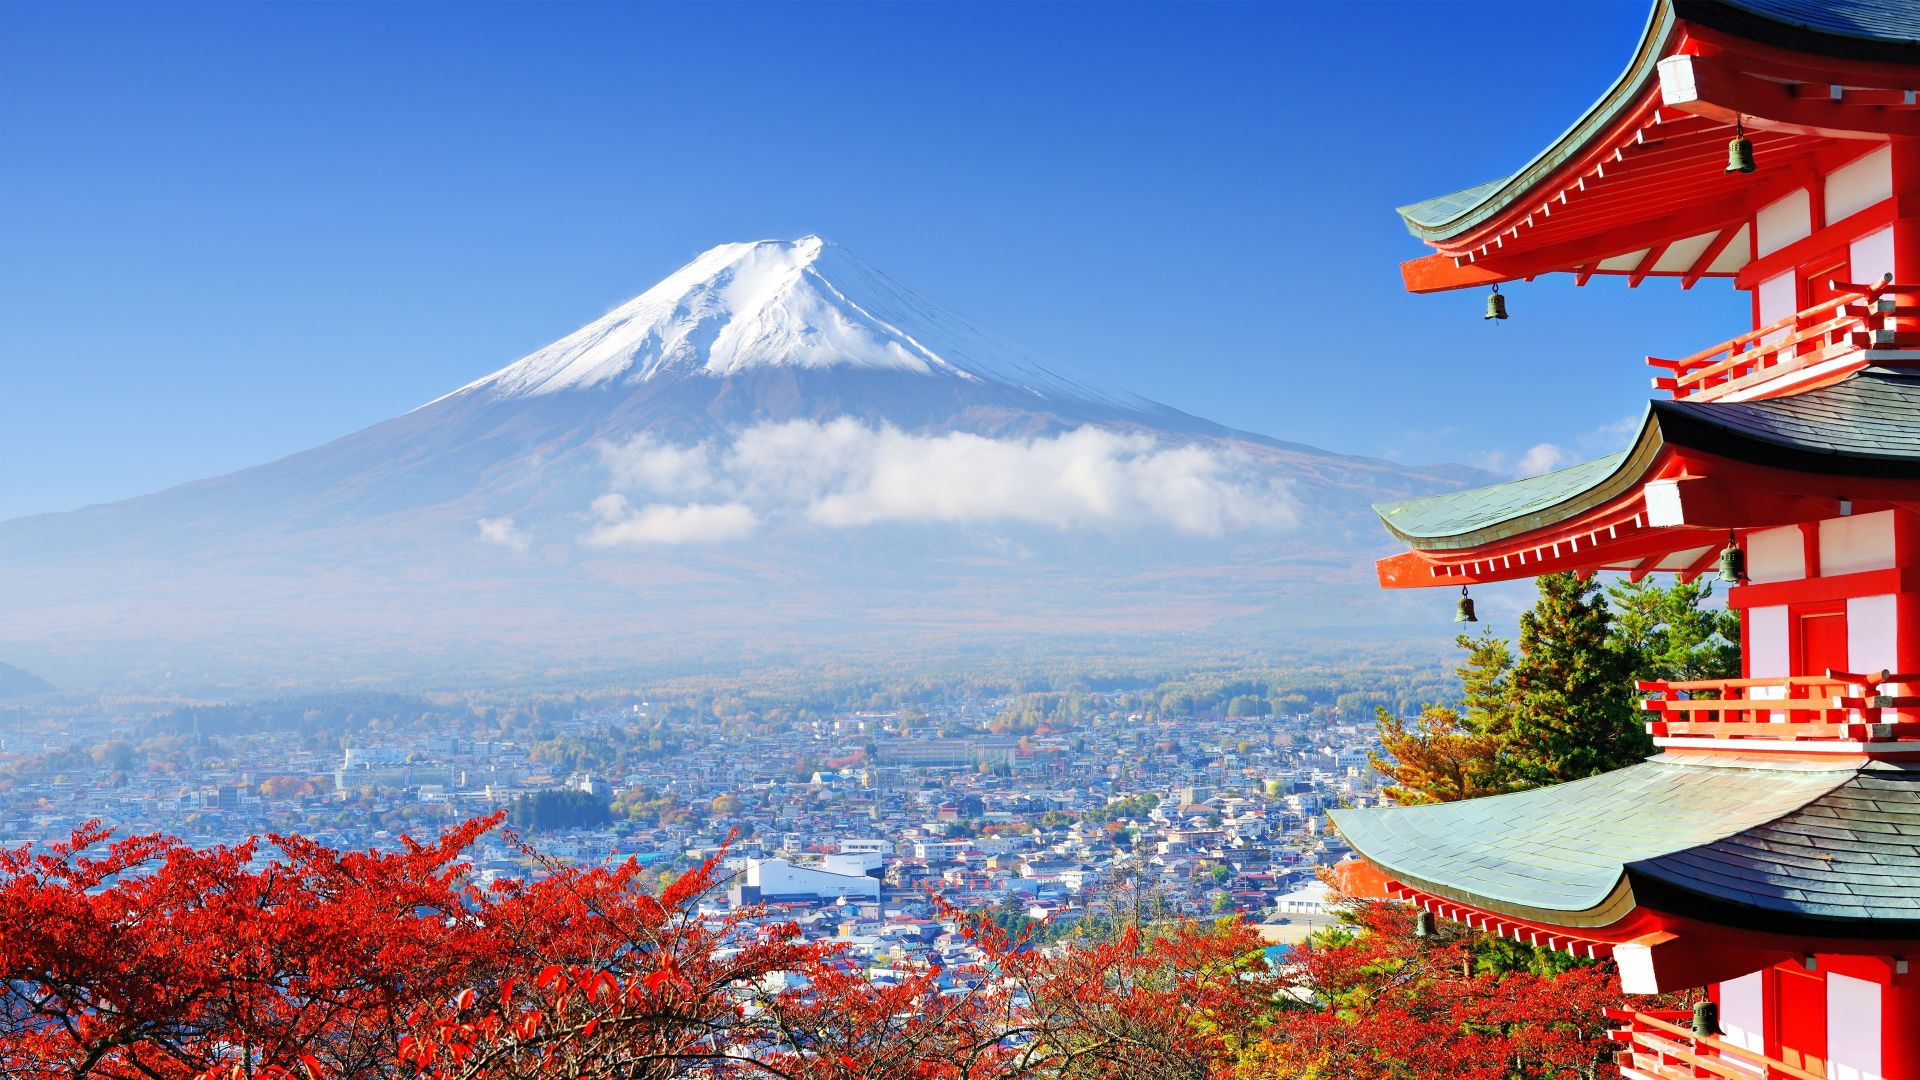 fuji, 4k, HD wallpaper, japan, travel, tourism, National Geographic Traveler Photo Contest (horizontal)